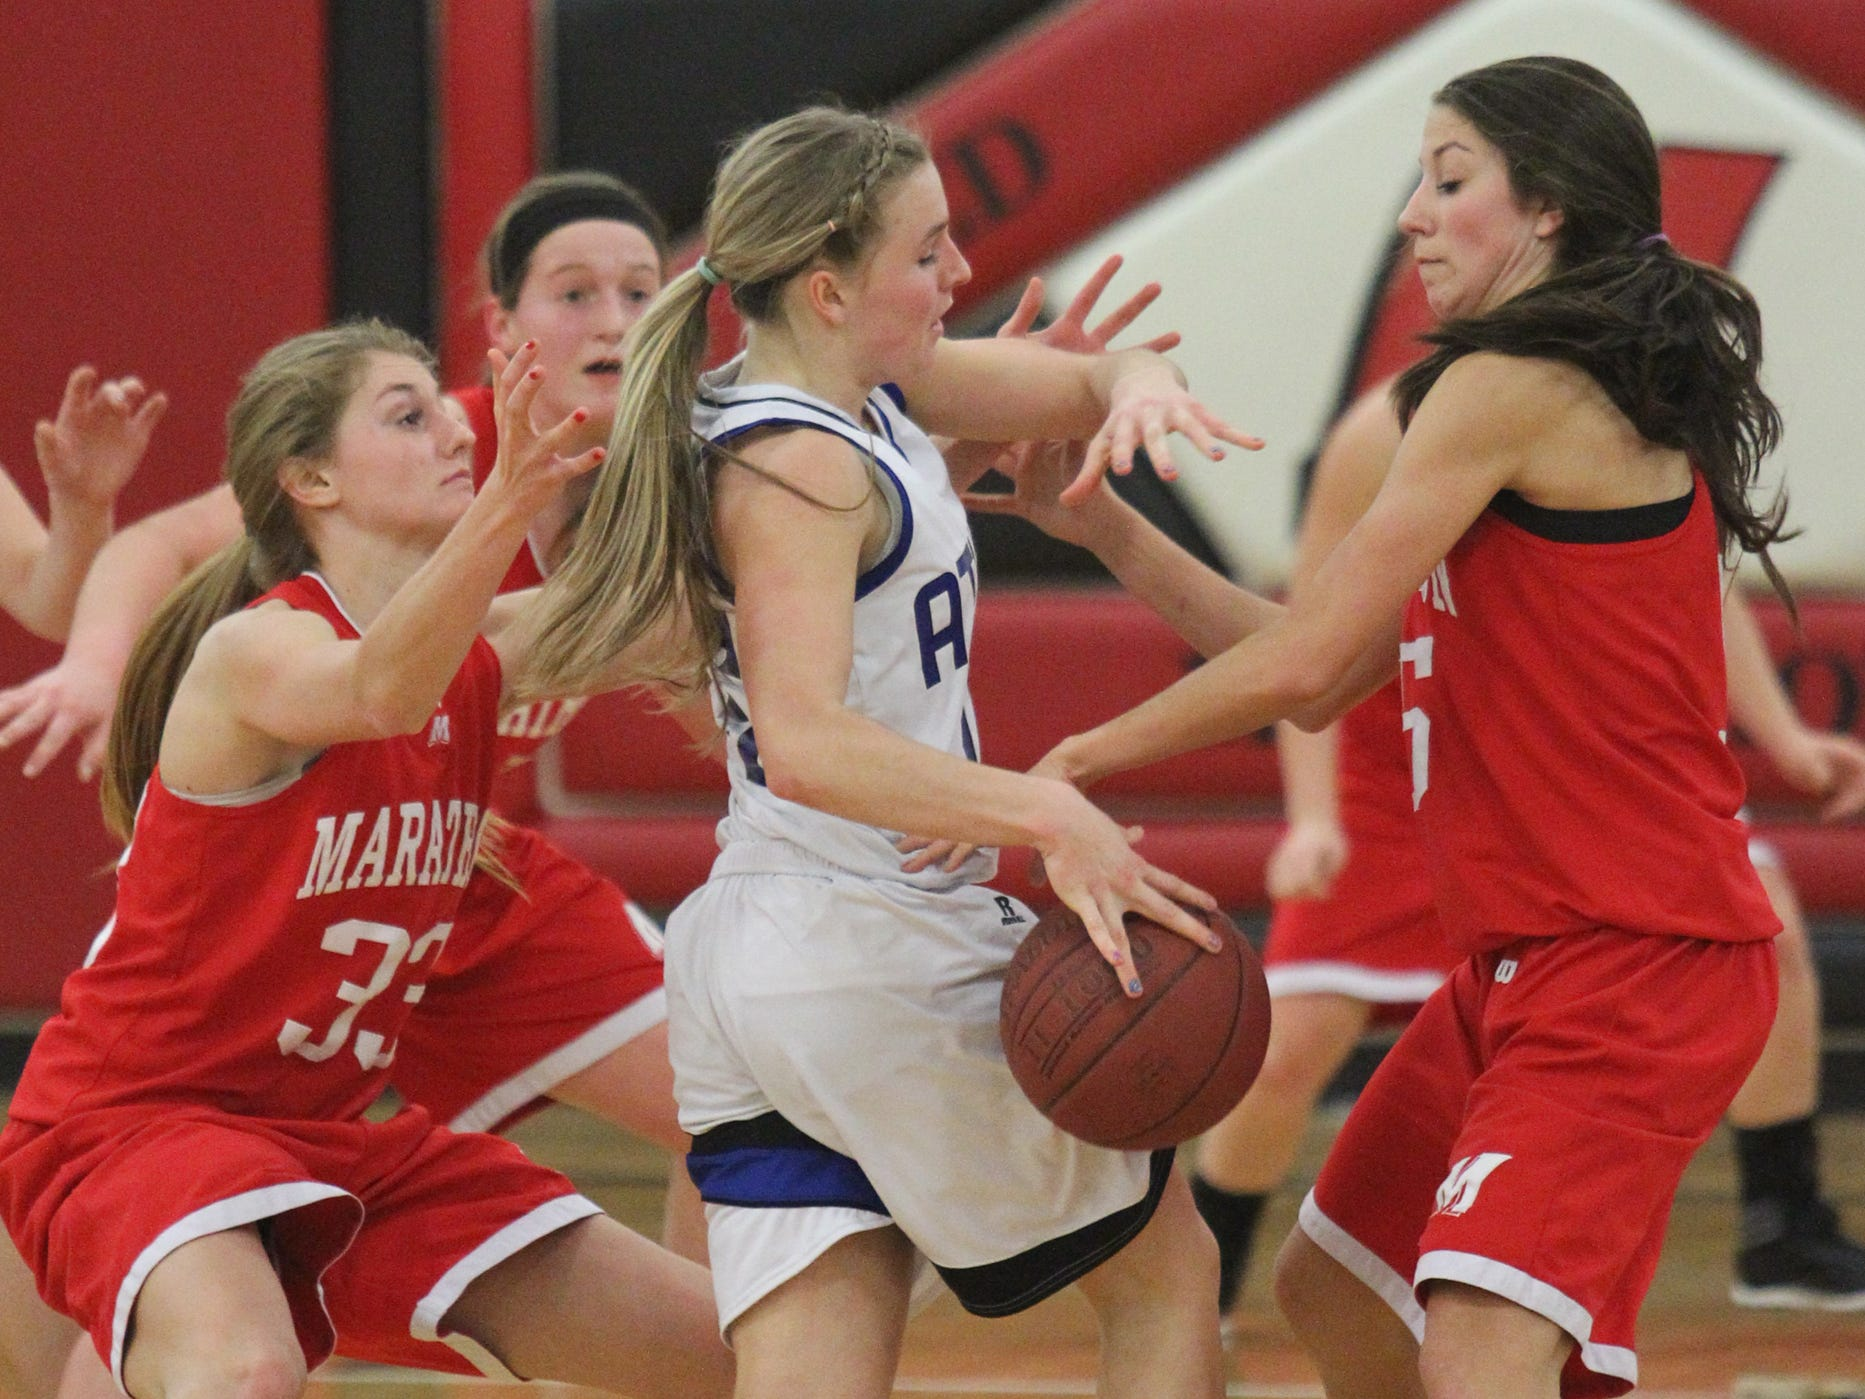 Marathon players surround Athens' Kyncaide Diedrich. Both teams received a No. 1 seed Sunday as the WIAA released the girls basketball brackets.